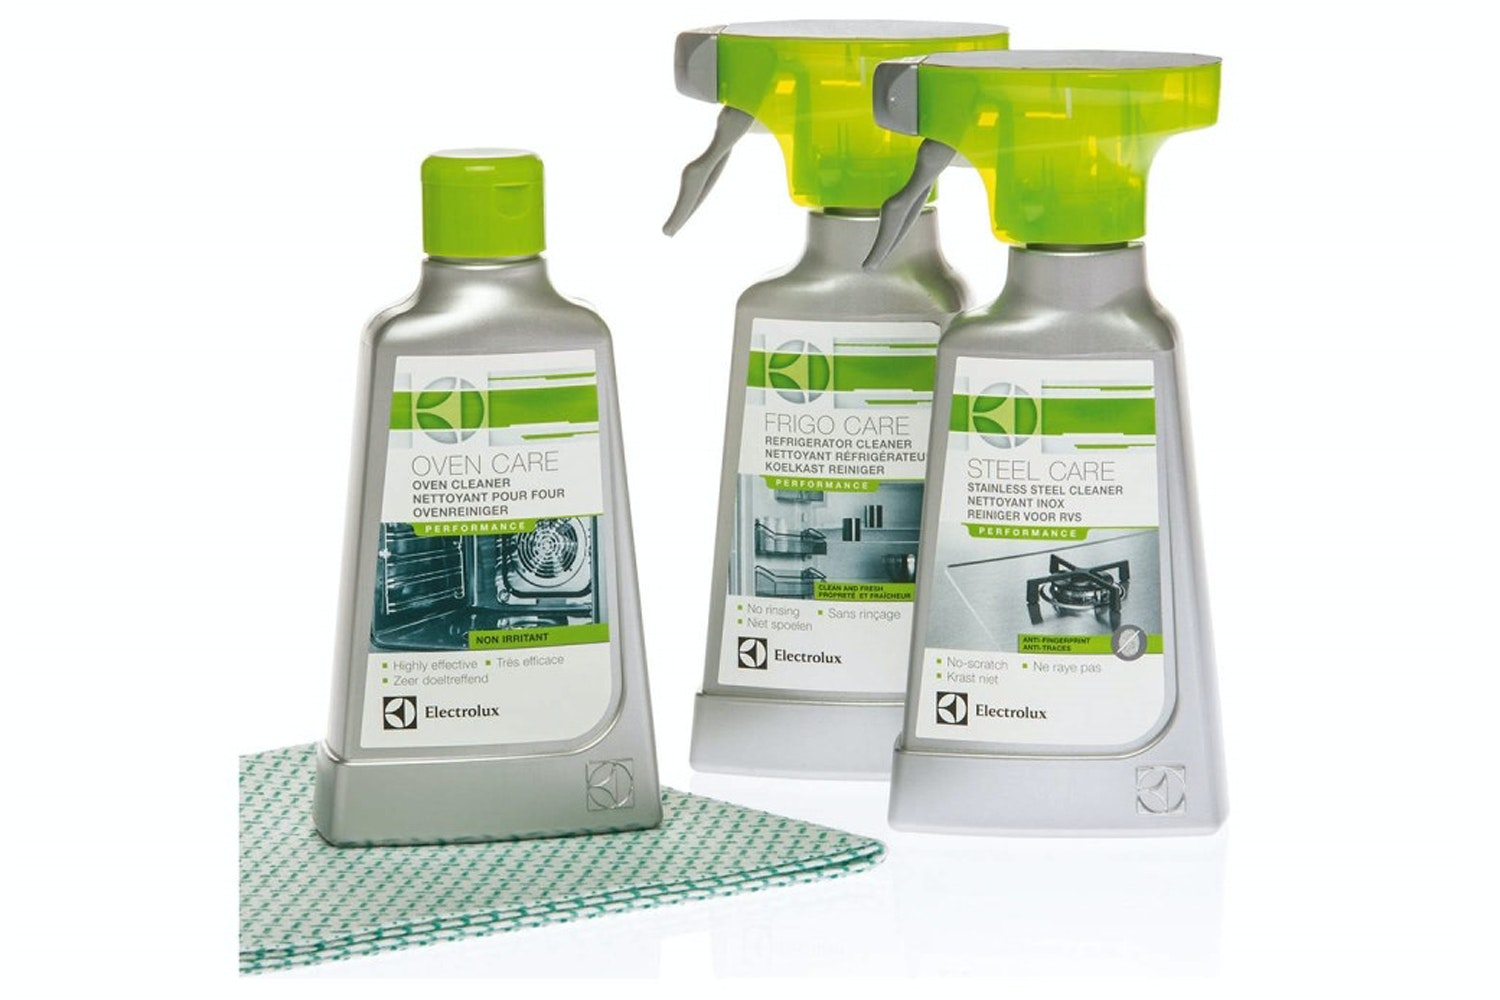 Electrolux Kitchen Cleaning Kit | 9029794626